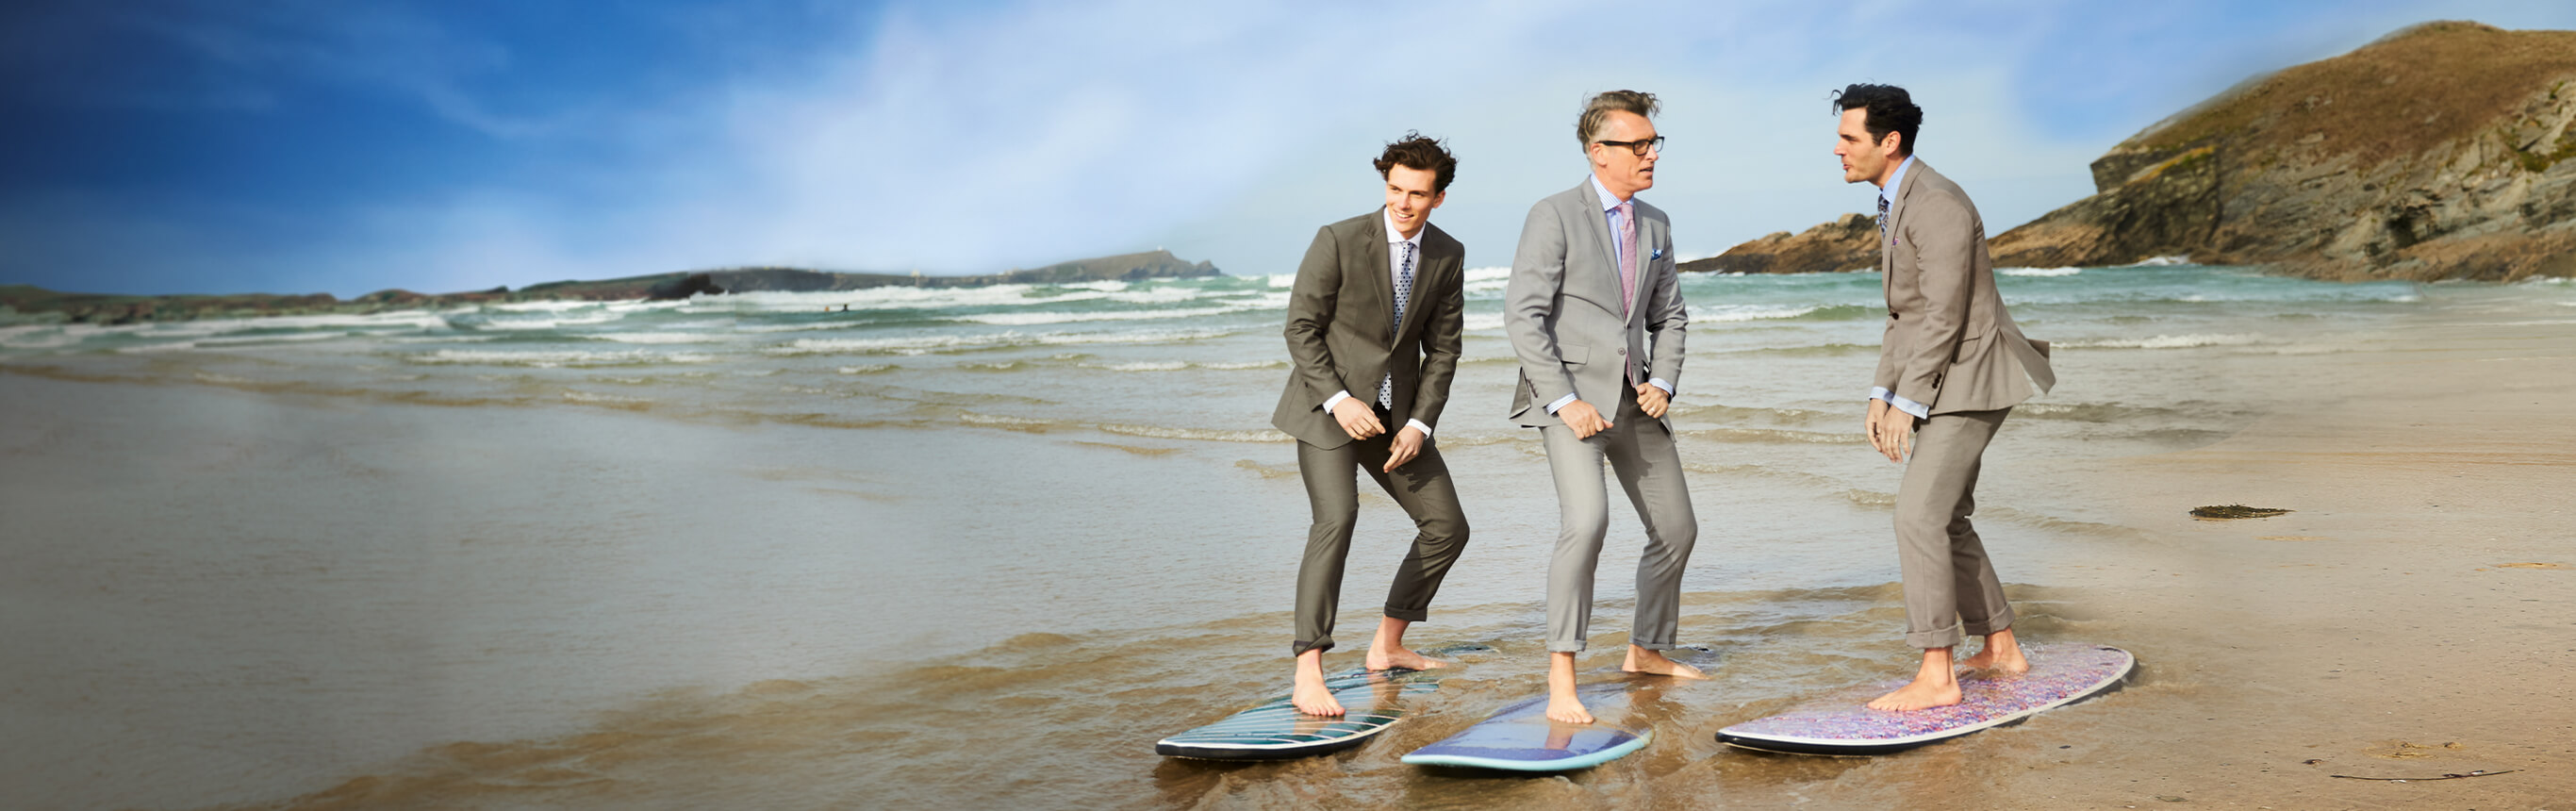 3 men in suits on surfboards